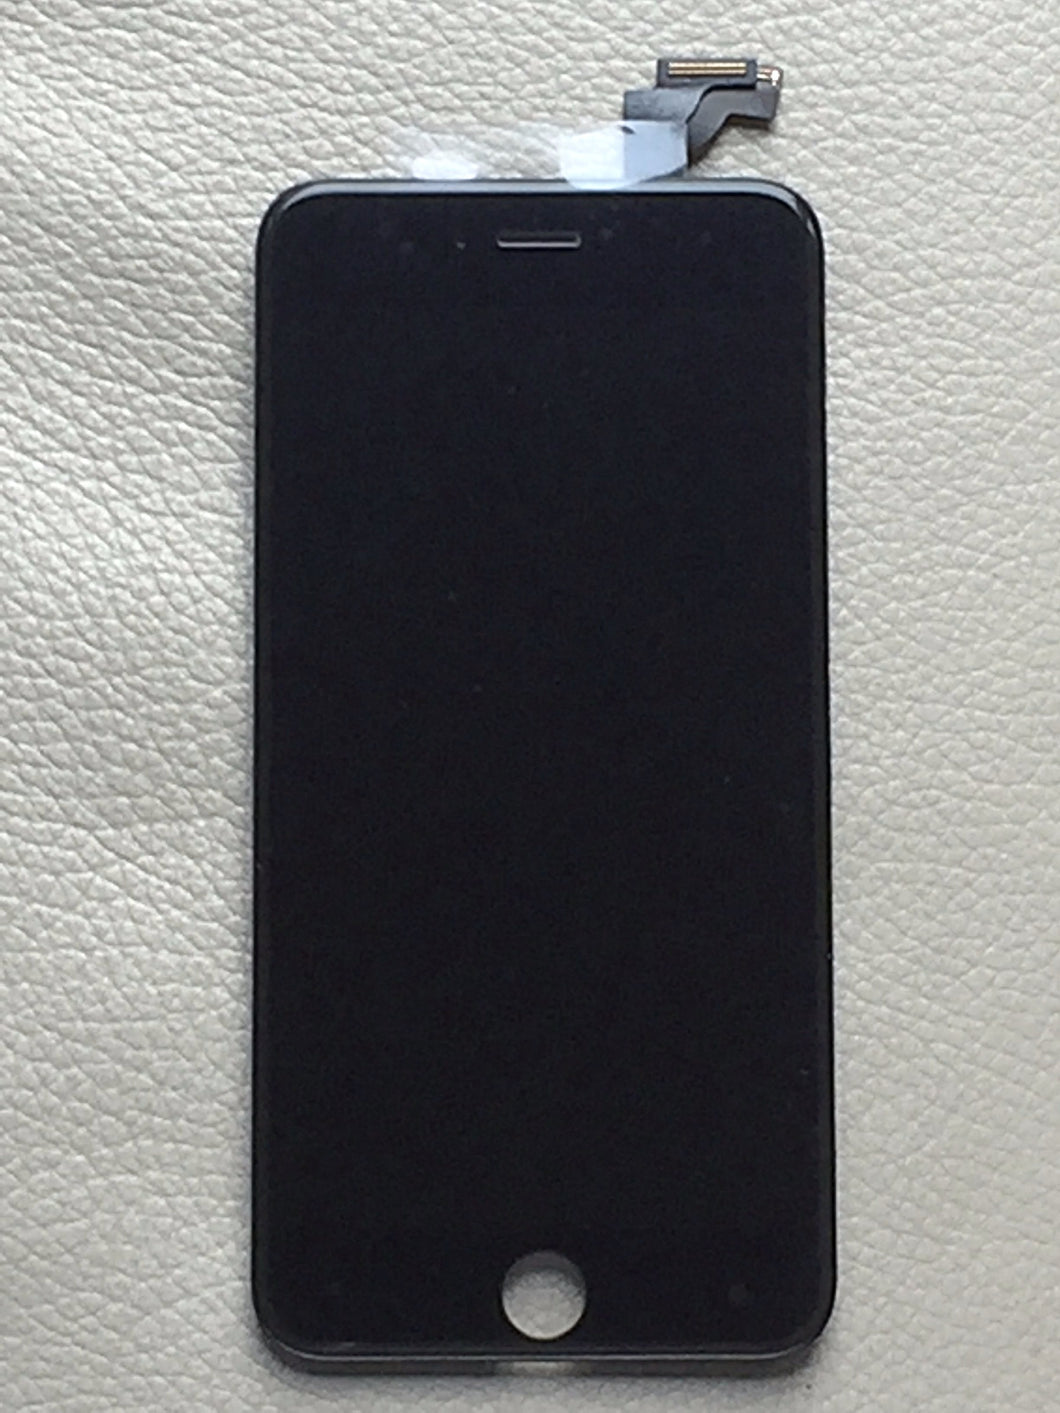 AAA Grade iPhone 6 Plus LCD Screen Digitizer -Black - 6 Month Warranty